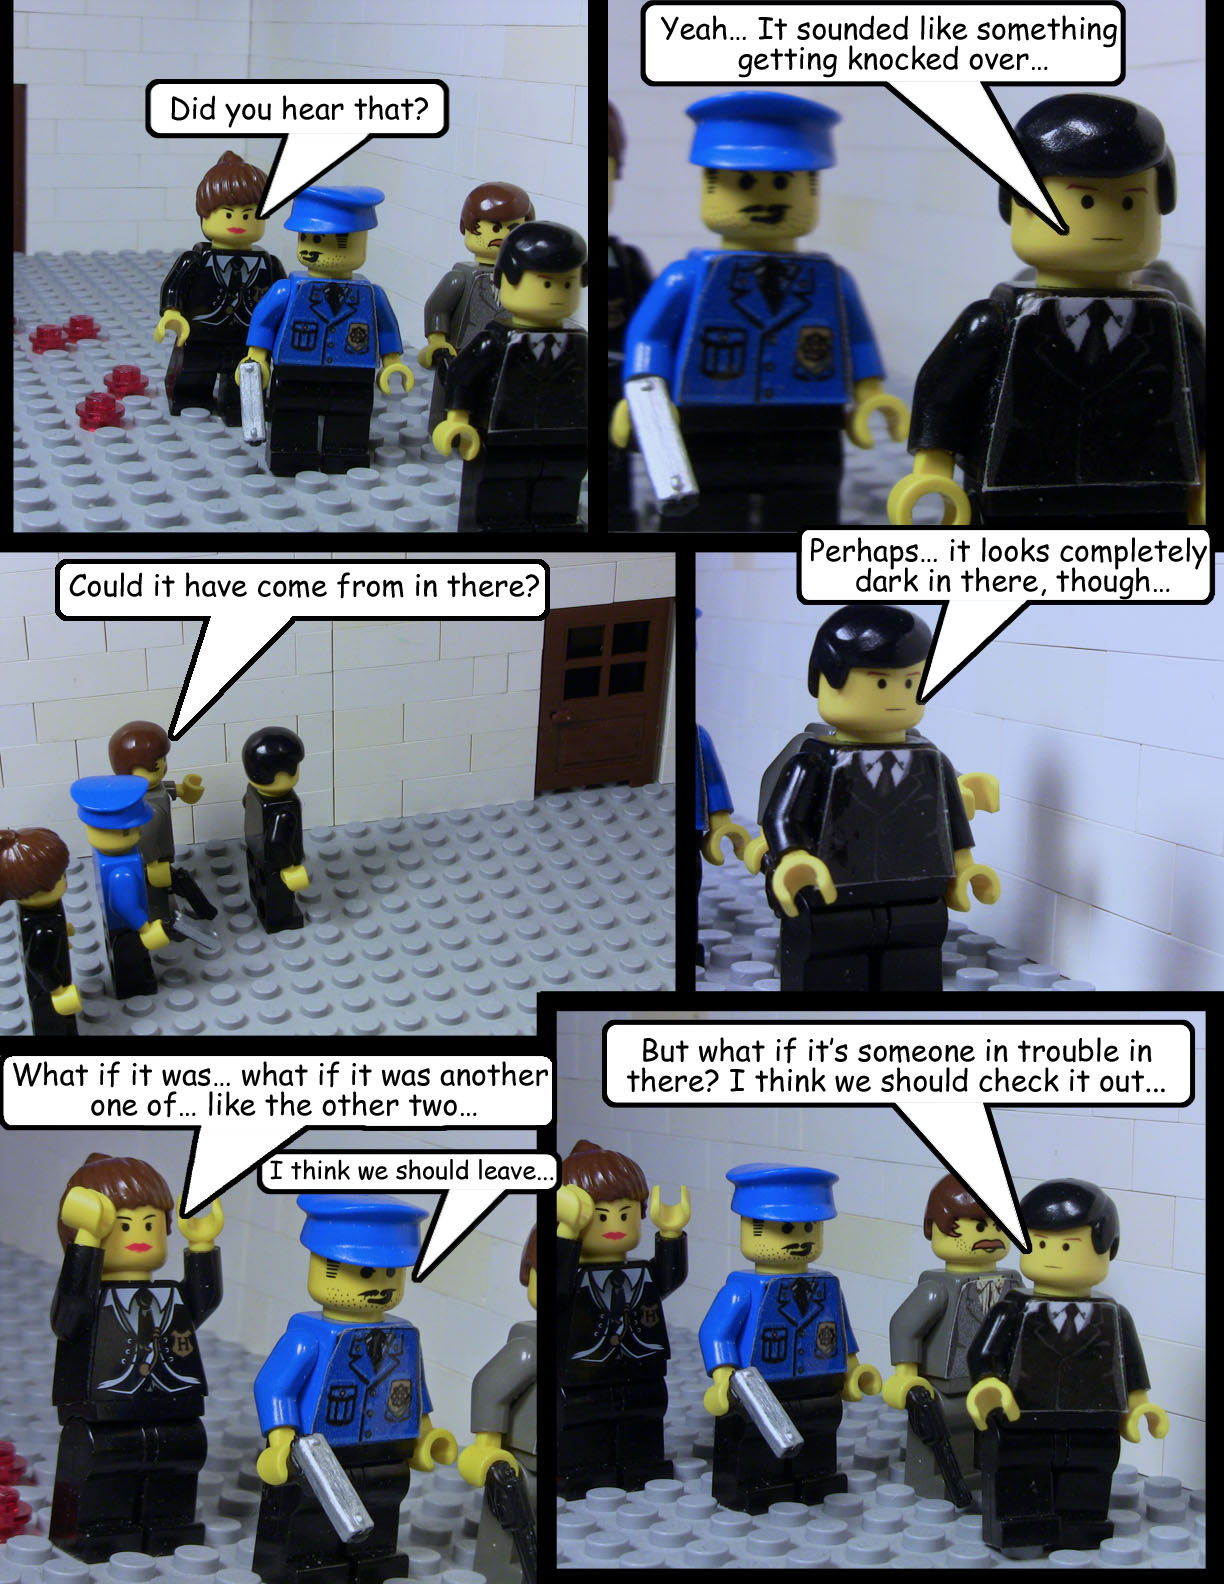 Zombie Outbrick: Episode 50